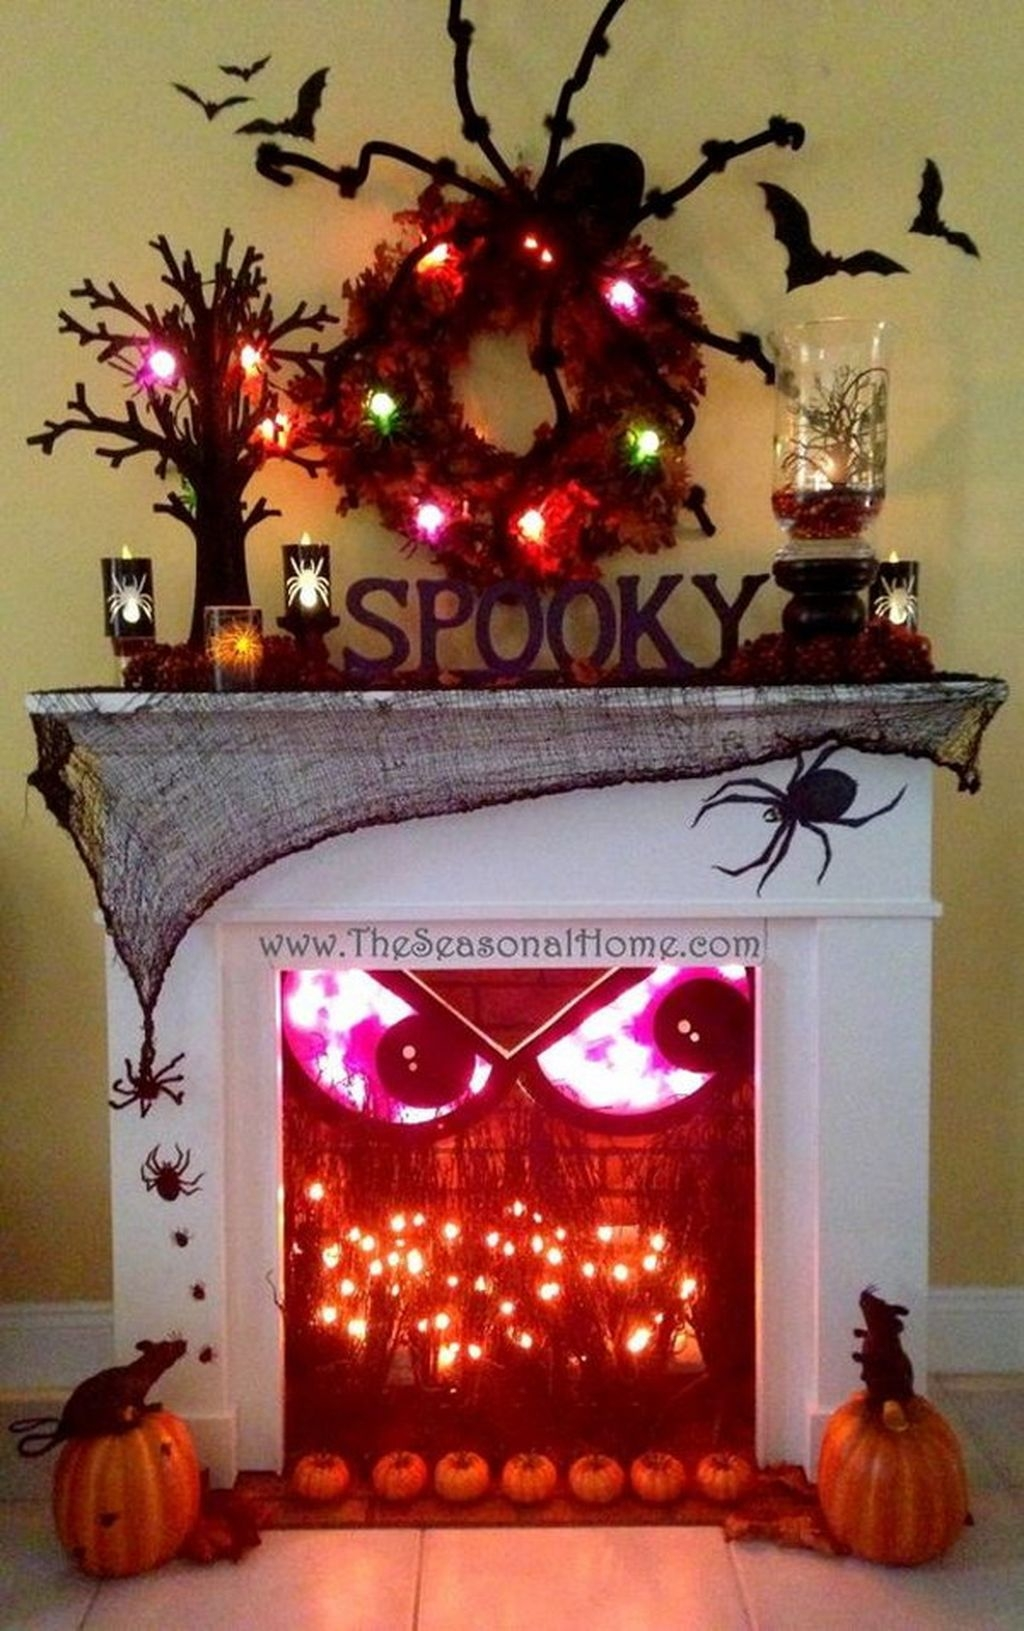 Cozy Fireplace Christmas Decoration Ideas To Makes Your Room Keep Warm02